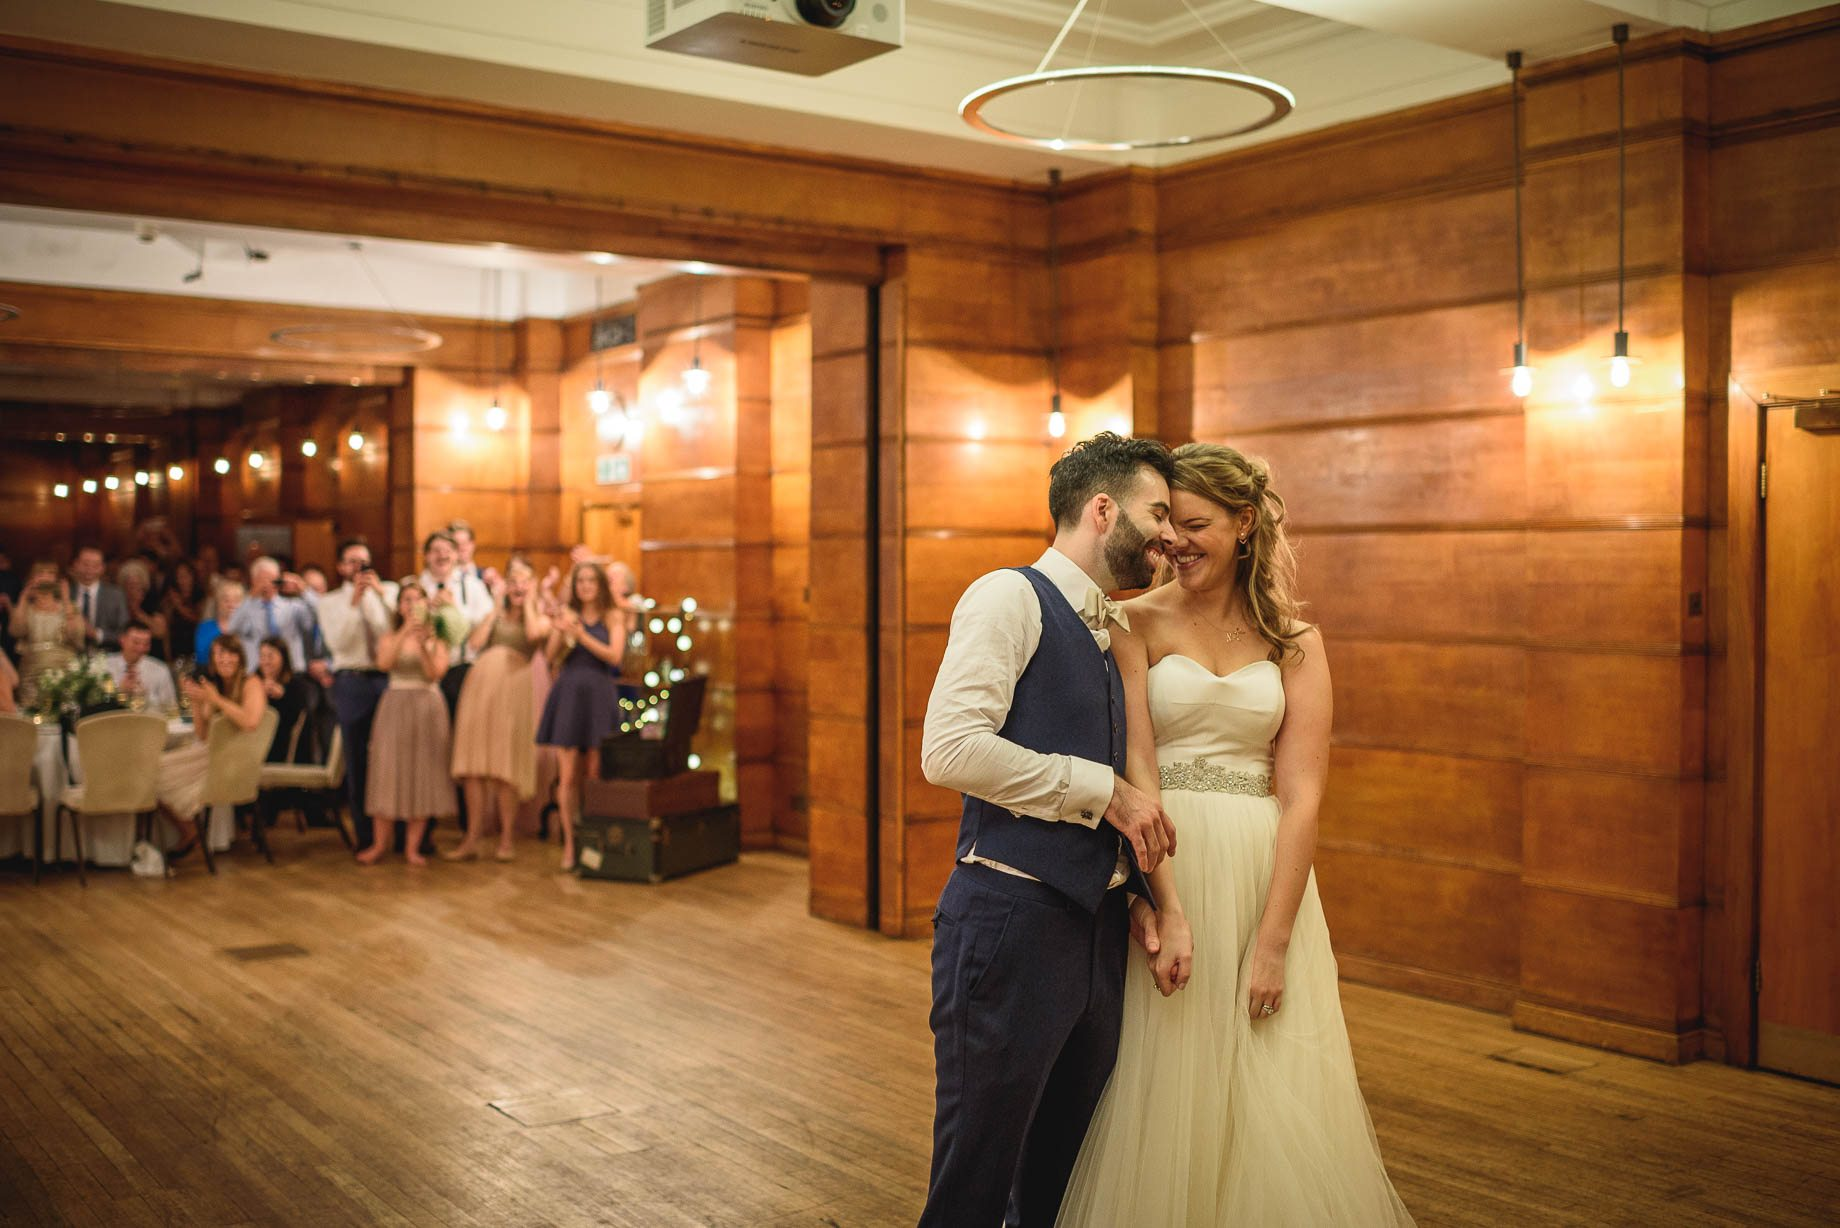 London Wedding Photography - Guy Collier Photography - LJ + Russell (155 of 155)